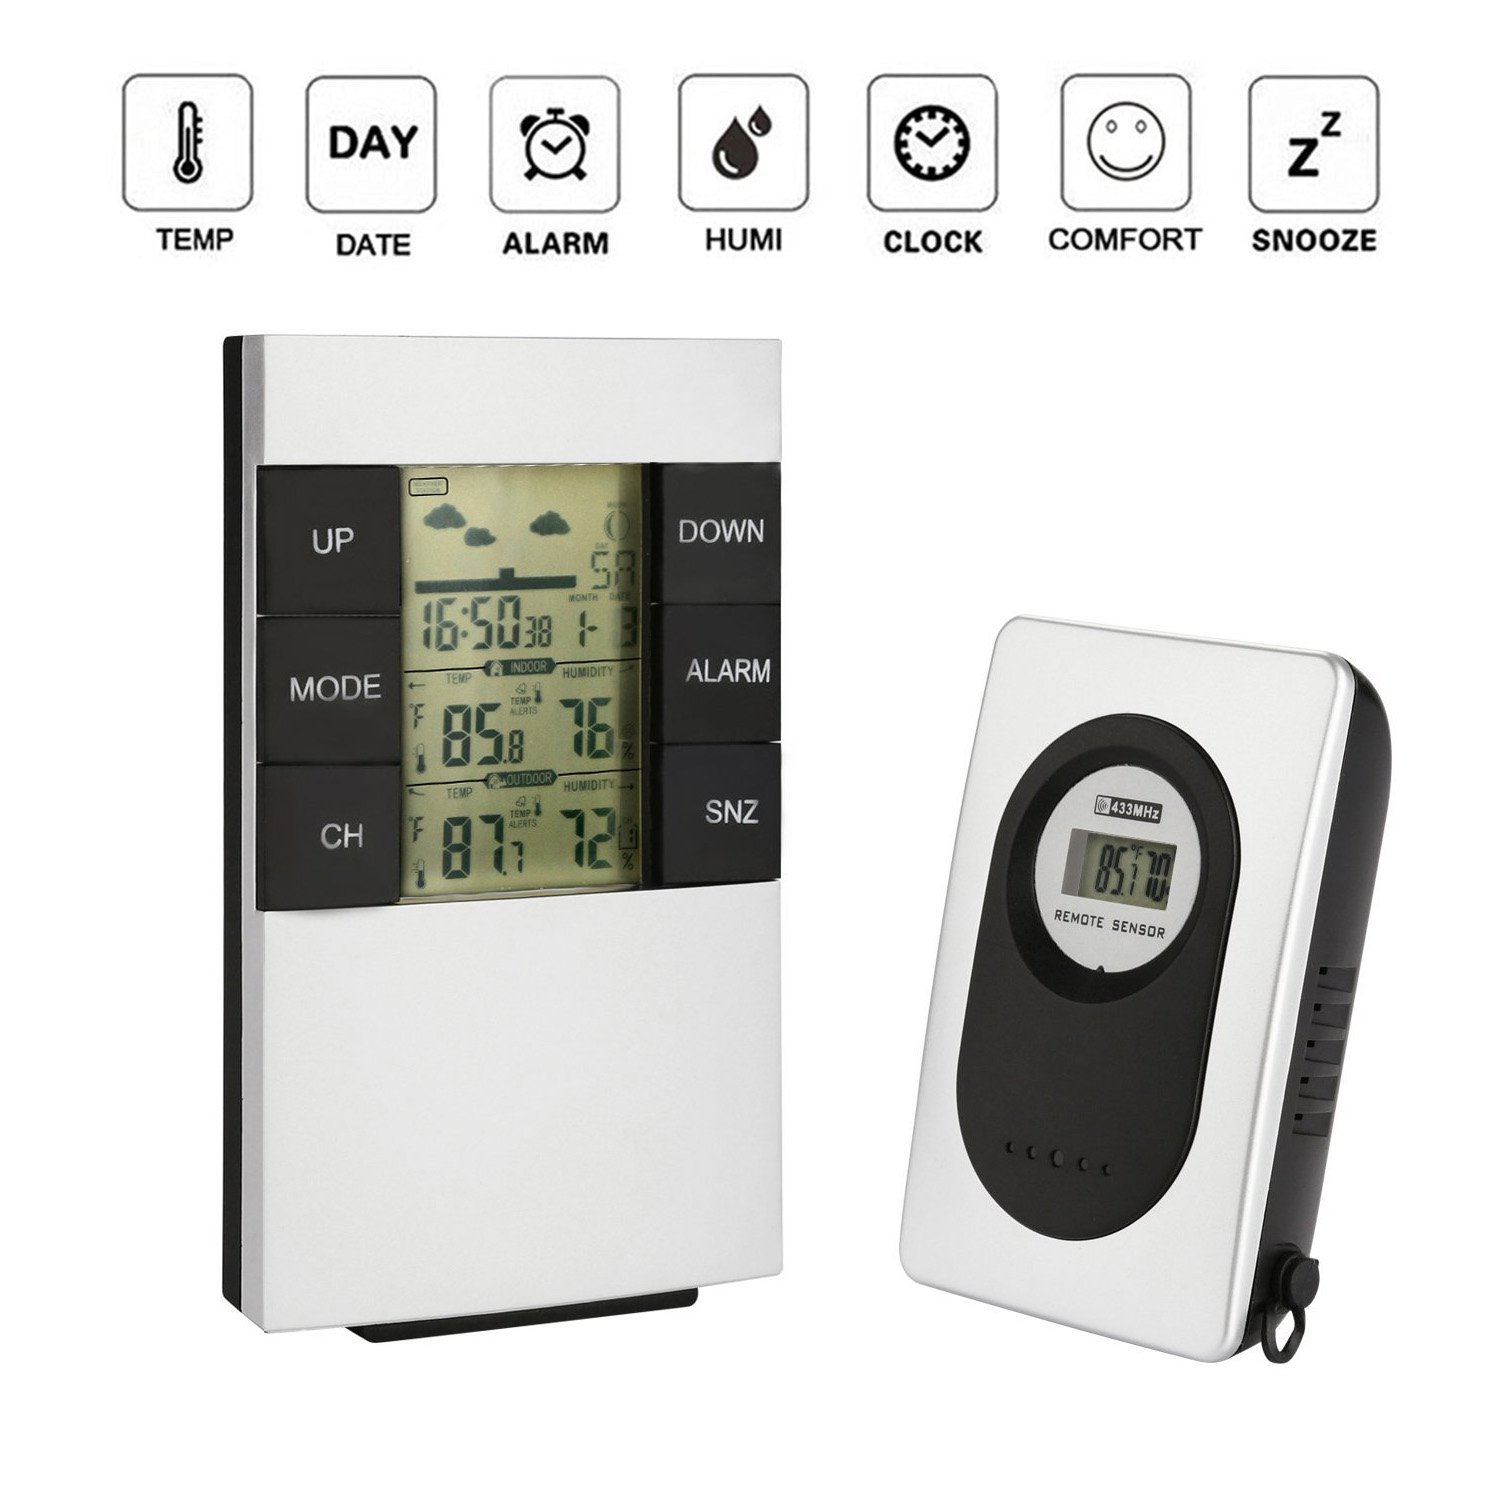 WElinks Multifunctional LCD Display Wireless Weather Forecast Alarm Clock Indoor/Outdoor Themometer Humidity Monitor with Calendar/Snooze Function